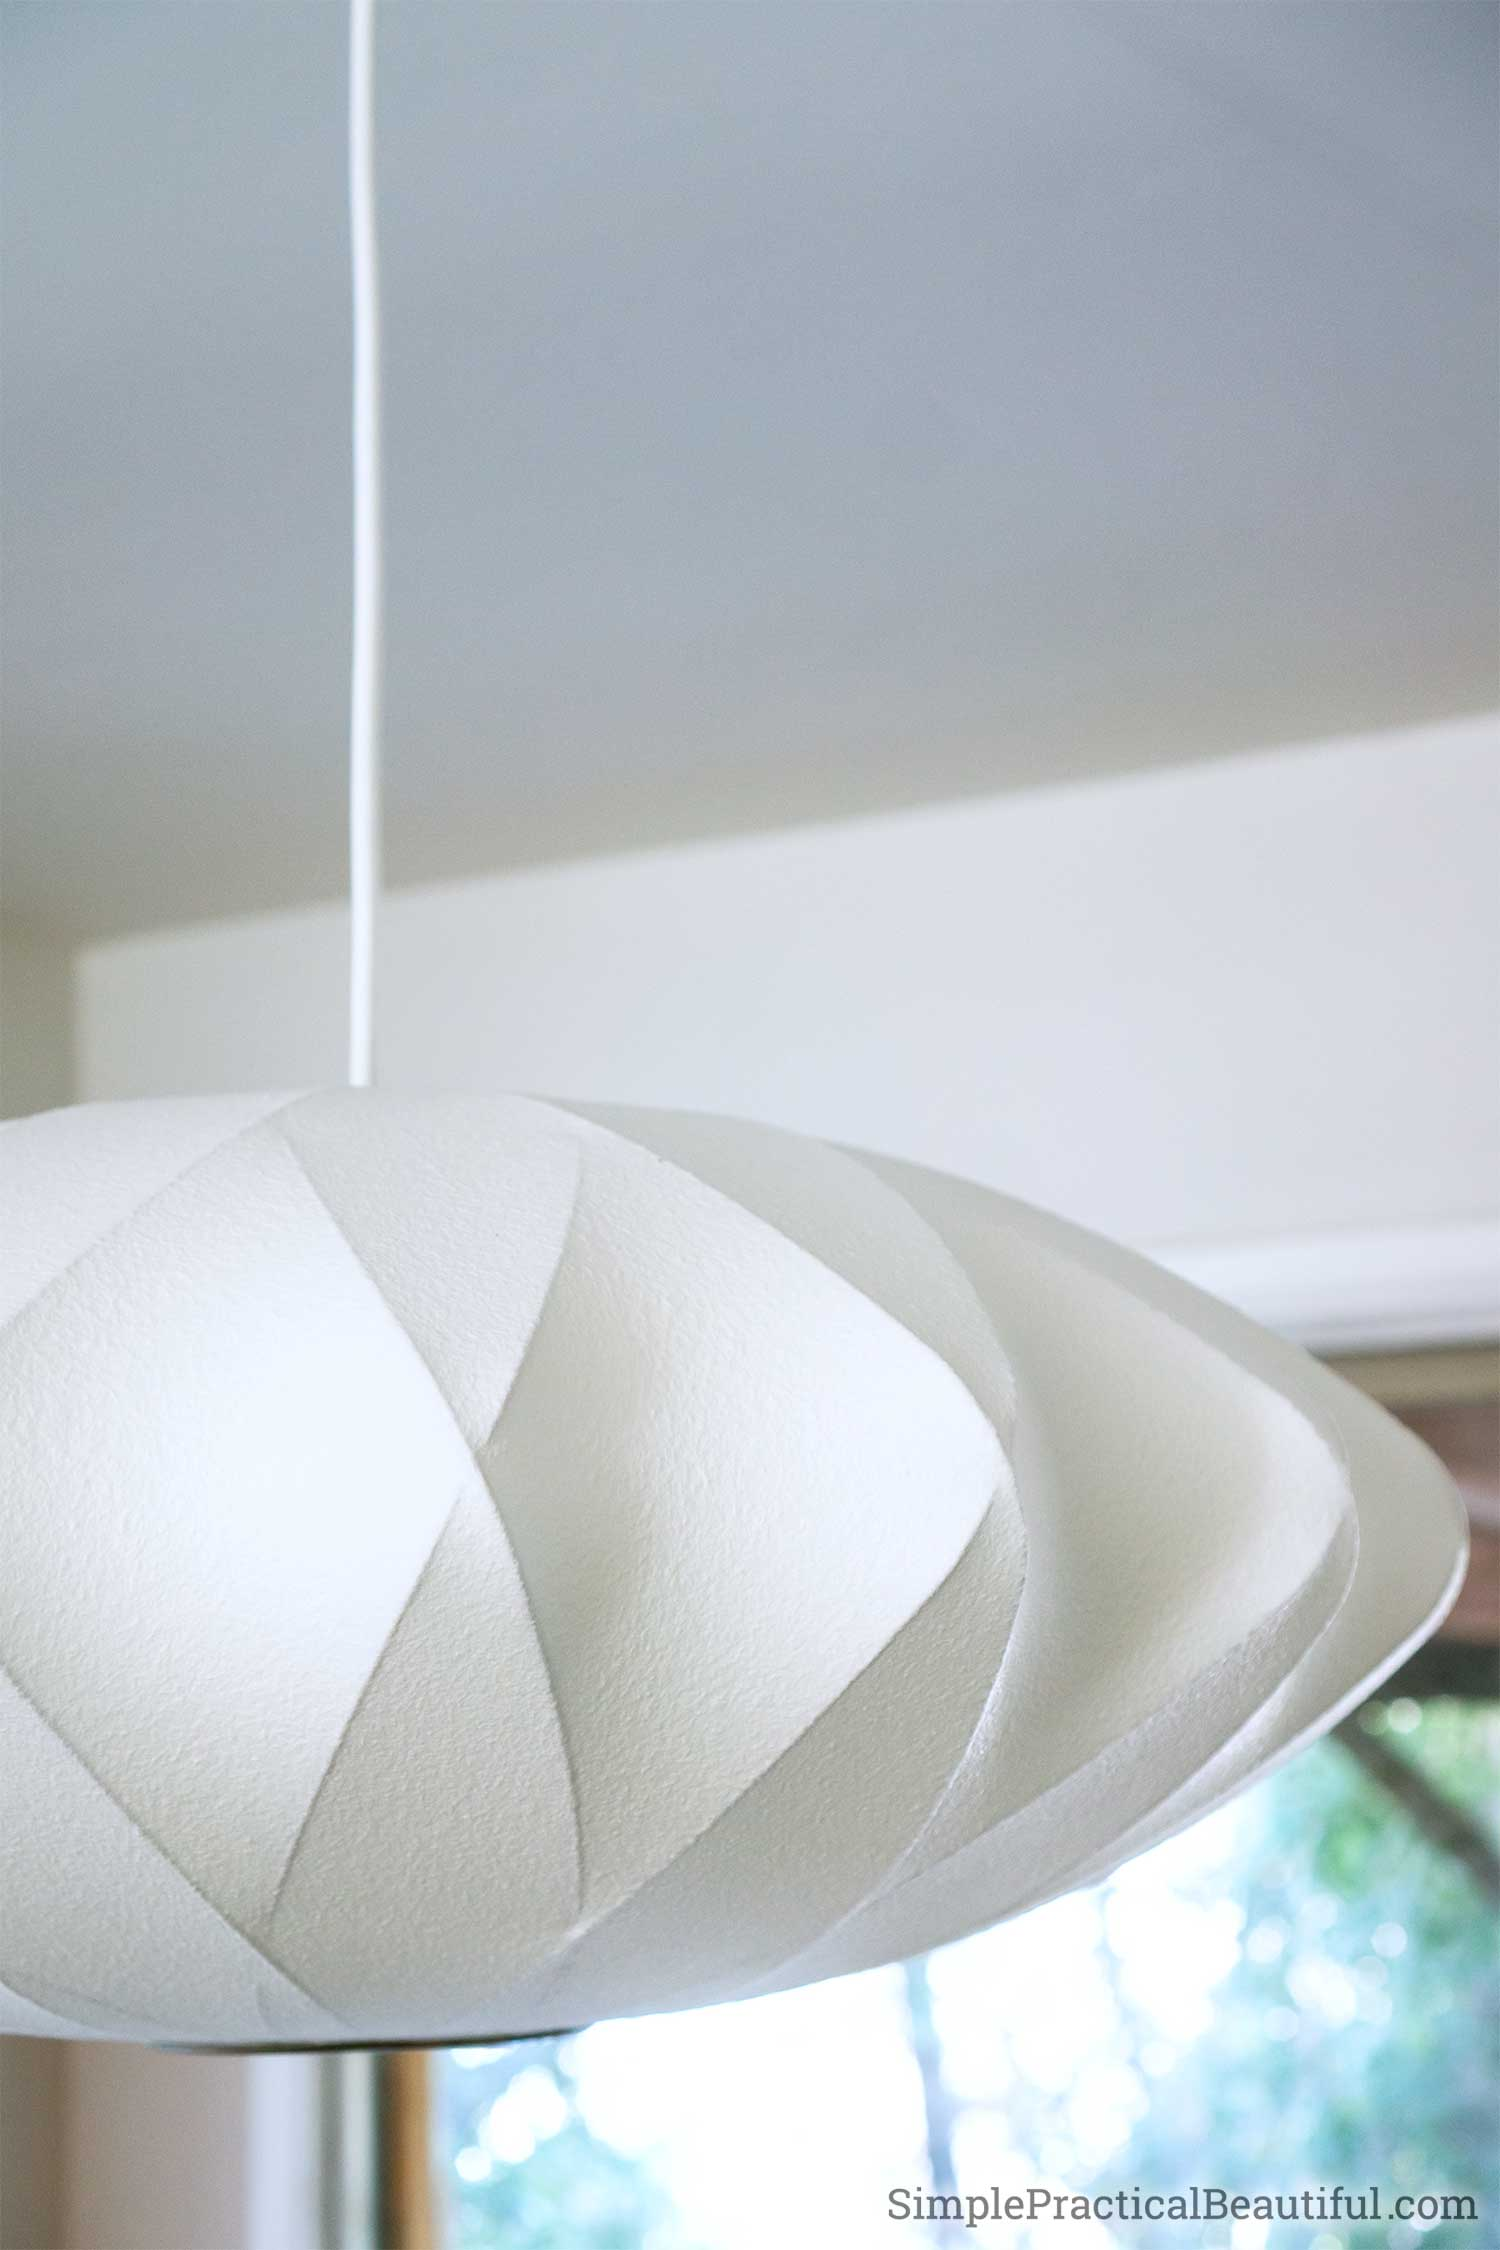 DIY tutorial on installing a new ceiling light after removing an old dated fan light combo fixture